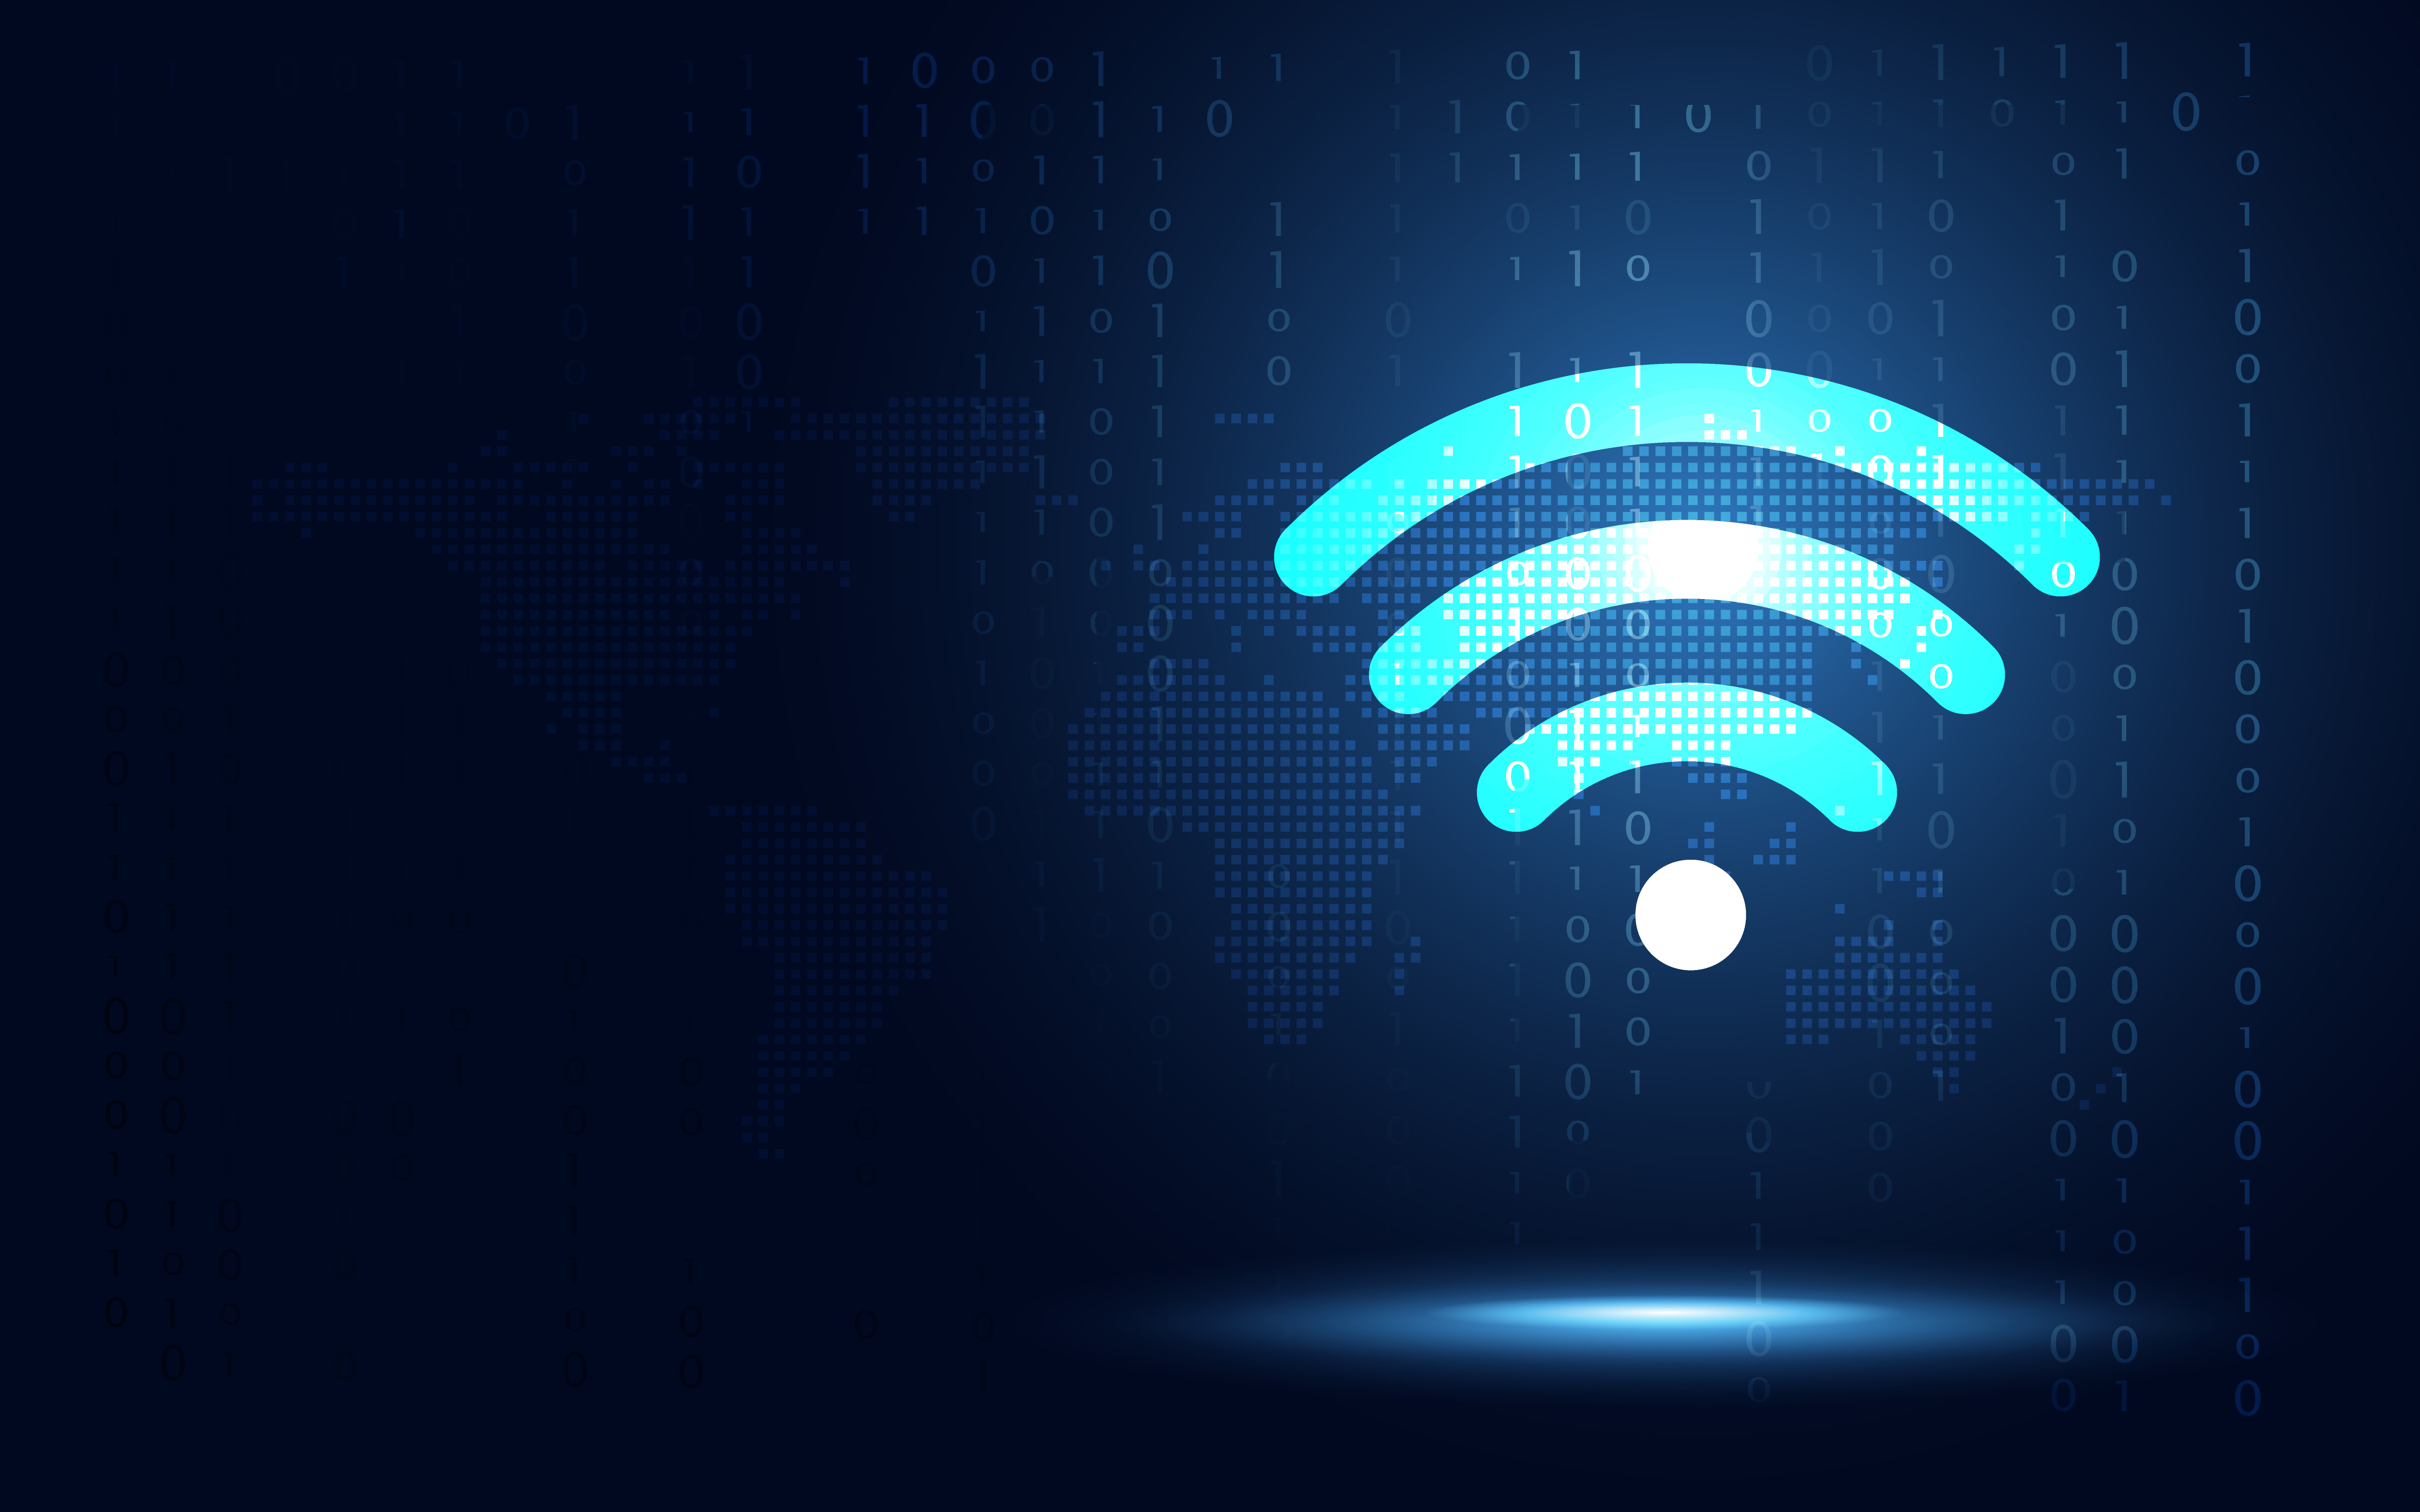 Futuristic Blue Wireless Connection Abstract Technology Background Artificial Intelligence